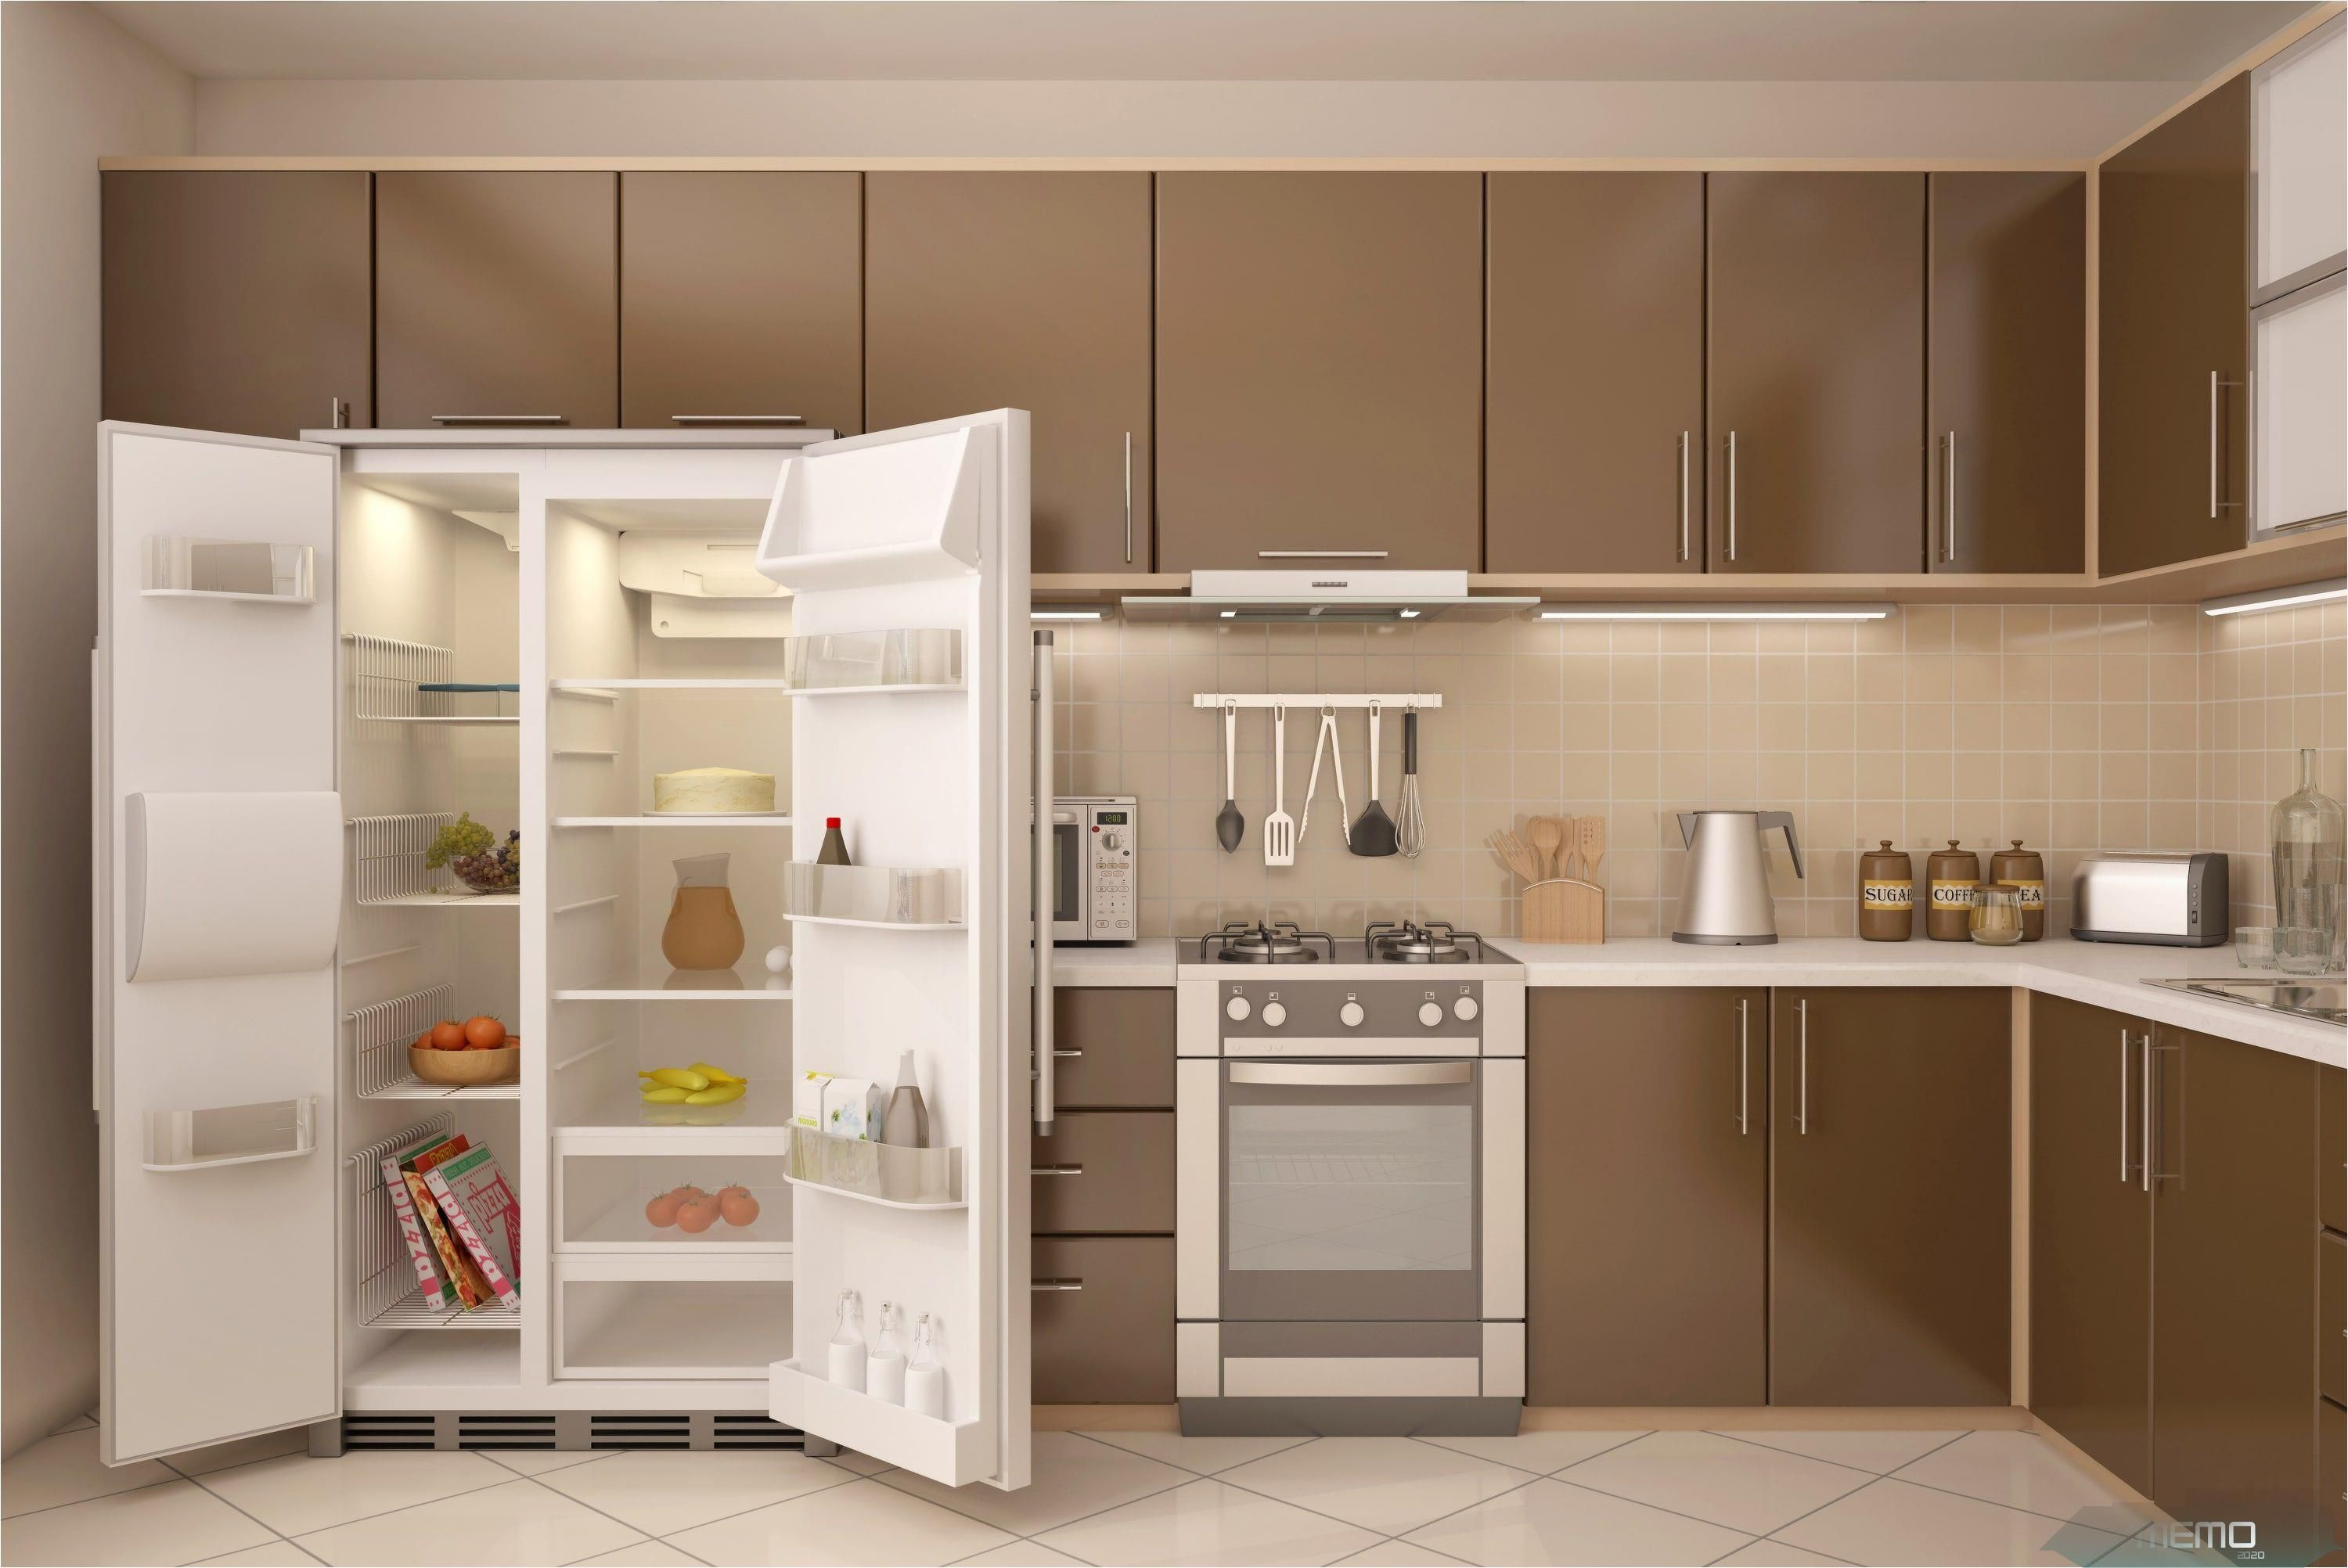 Jun 17 2019 Is It Time To Buy A New Refrigerator Follow These 3 Steps To Help You Shop For The In 2020 Samsung Refrigerator Repair Best Refrigerator Cabinets To Go